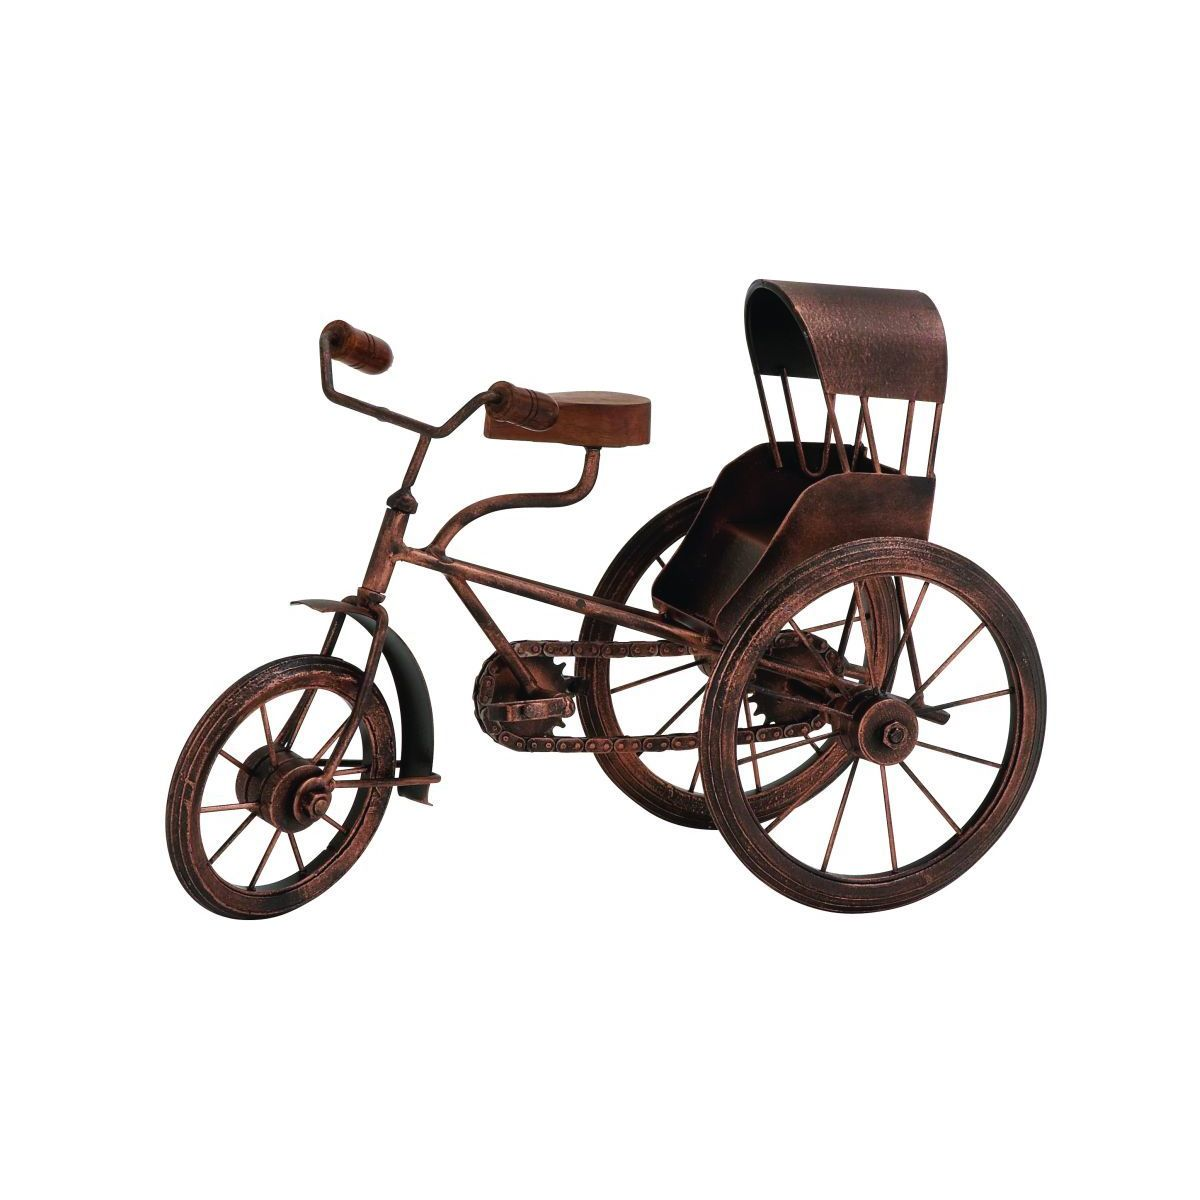 Studio 350 Metal WD Tricycle 14-inchW, 10-inchH (Metal WD...